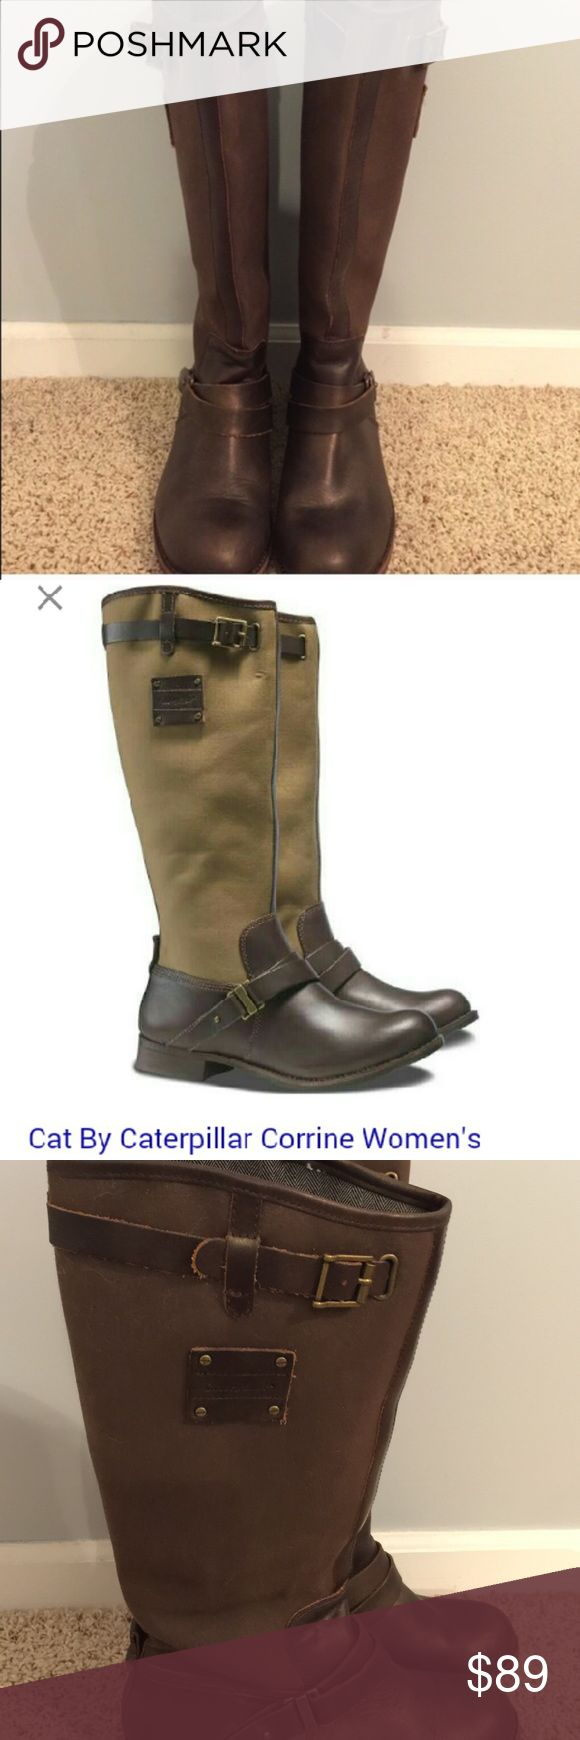 CAT Corrine riding boots Gently worn leather and canvas riding boots from Caterpillar. Corrine riding boot with leather sole and canvas upper. Leather accent straps with buckle give these boots a gorgeous riding boot look. Color does not match stock photo. Color well represented in actual pictures. Great boots!! Caterpillar Shoes